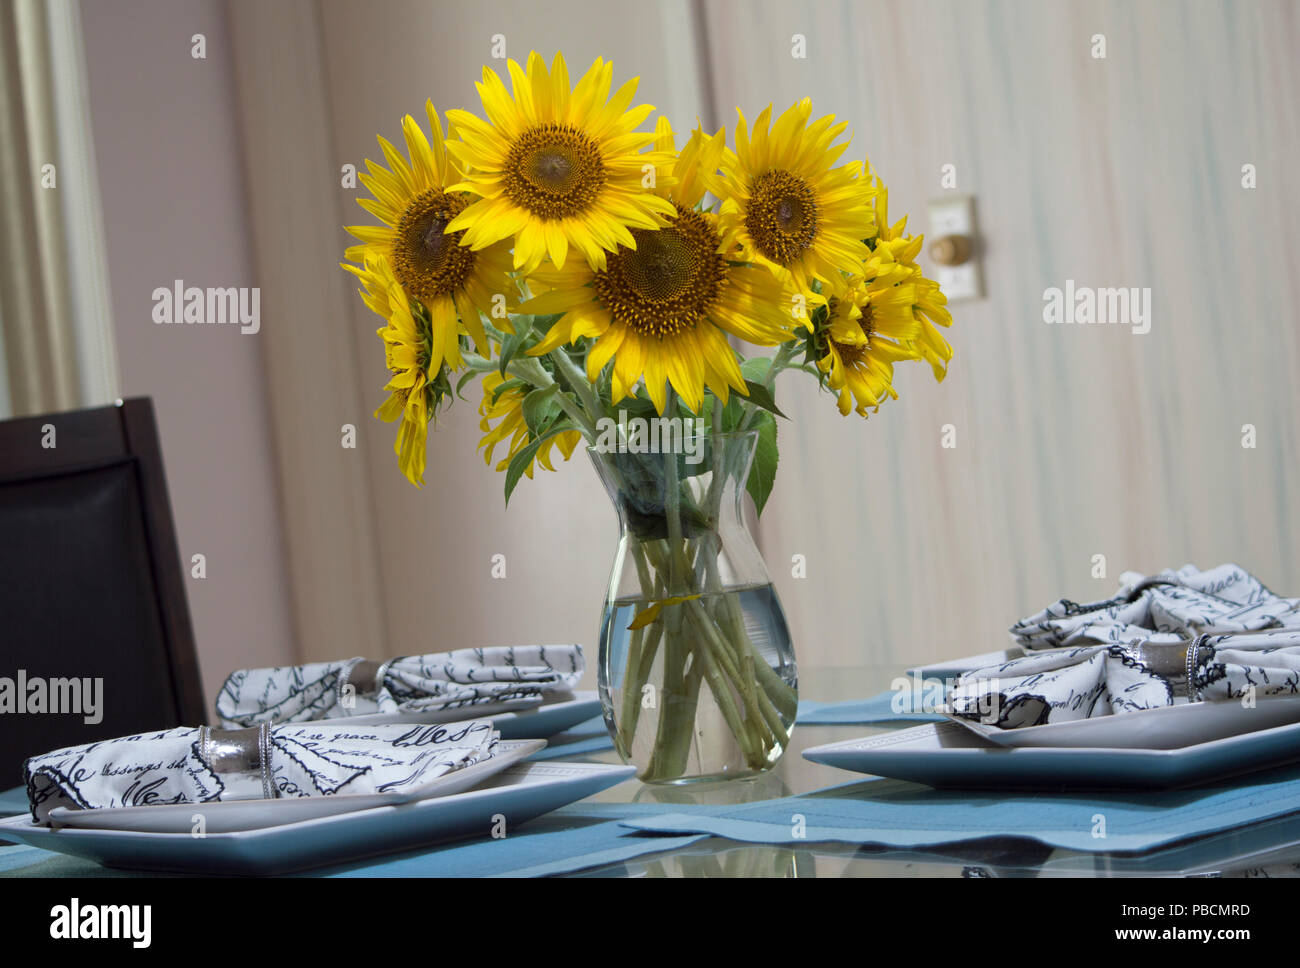 The Beautiful Centerpiece Filled With Sunflowers On A Dining Room Table Stock Photo Alamy